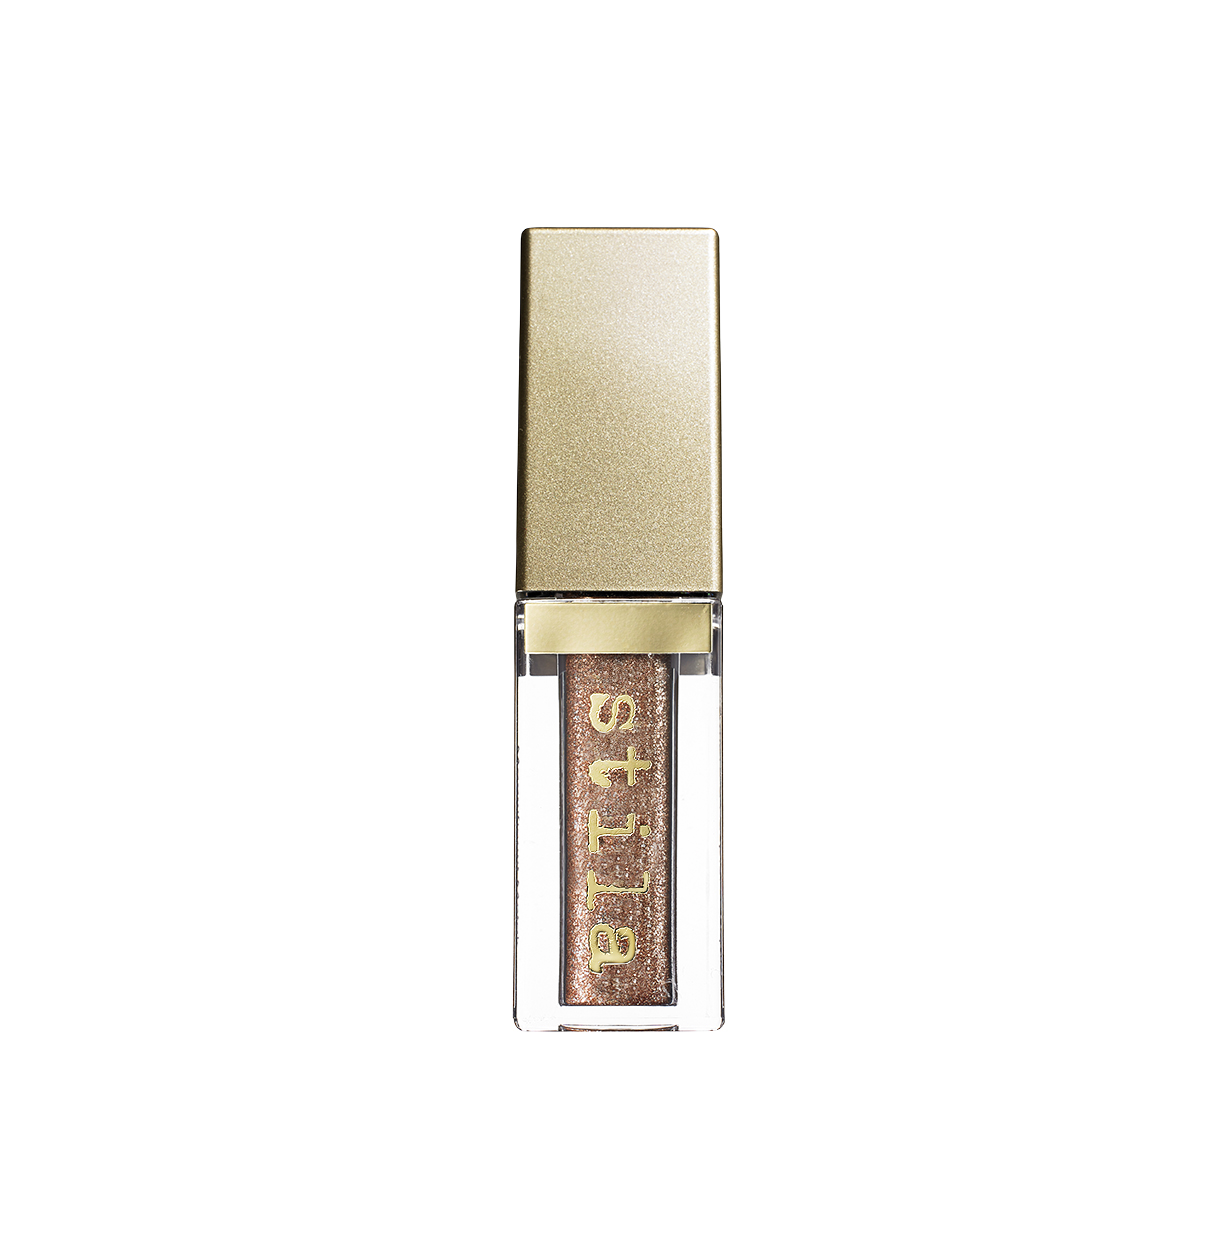 Stila Magnificent Metals Glitter and Glow Liquid Eyeshadow in Smoldering Satin